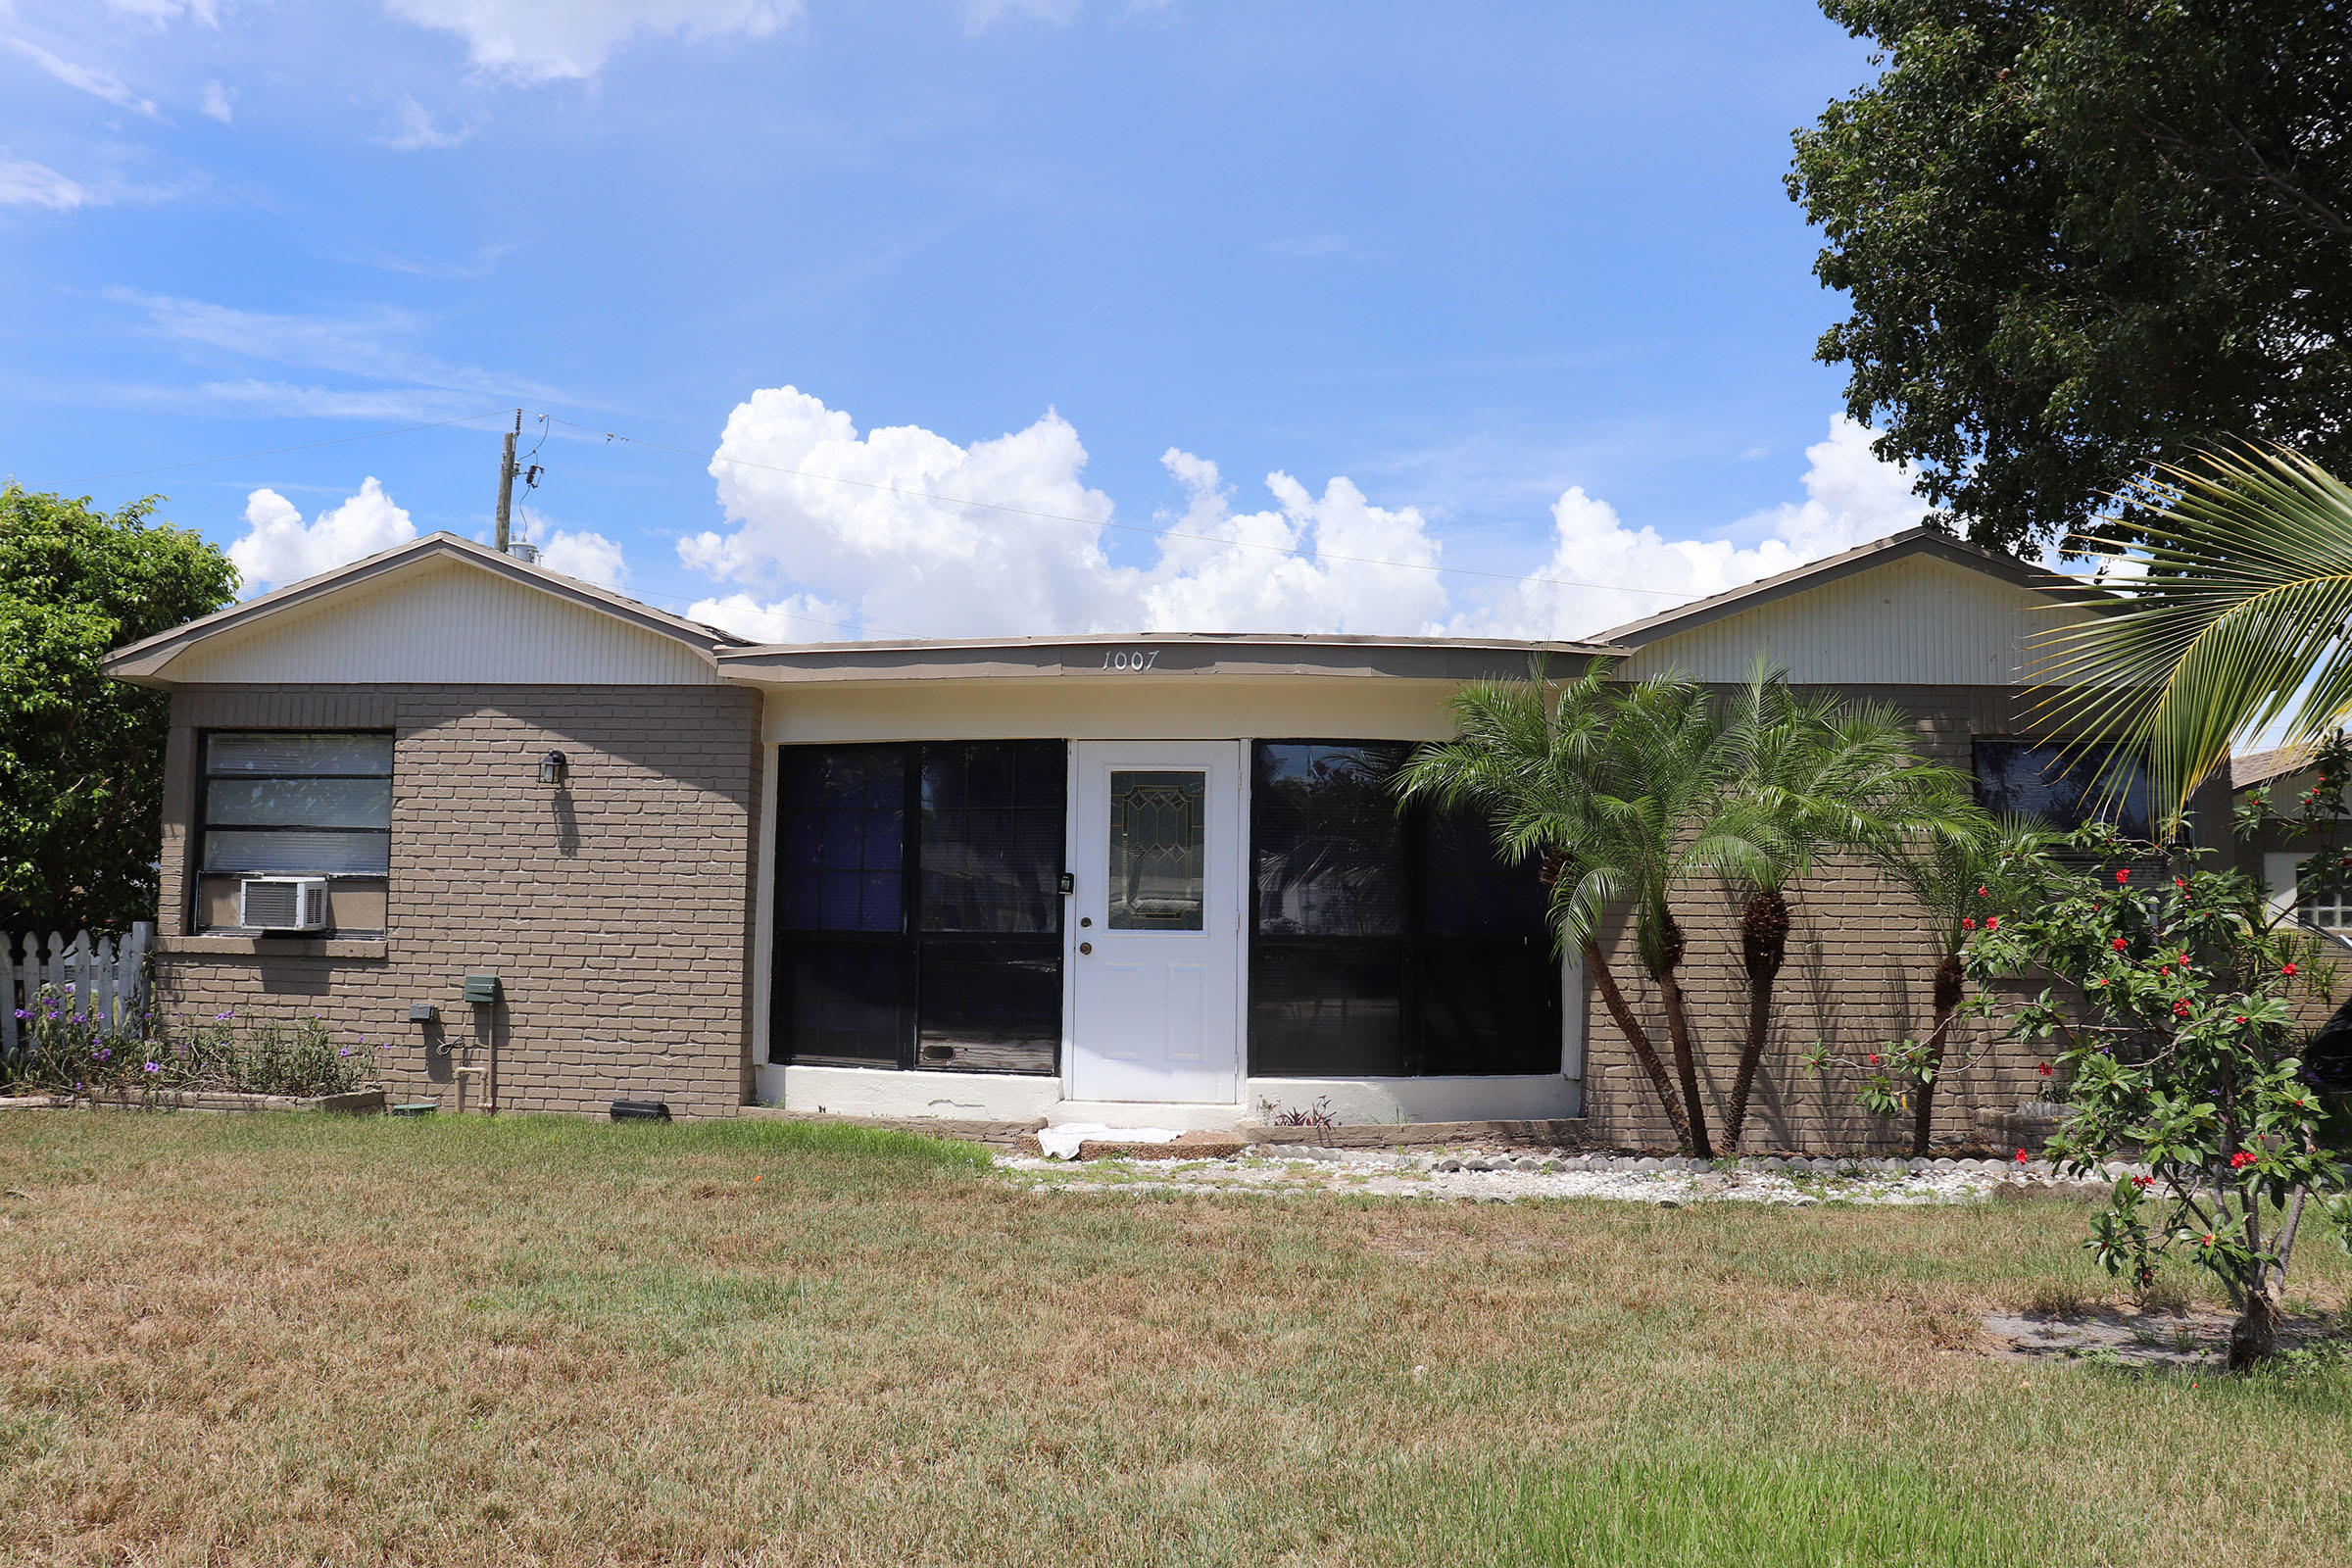 Homes for sale in delray beach fl no hoa